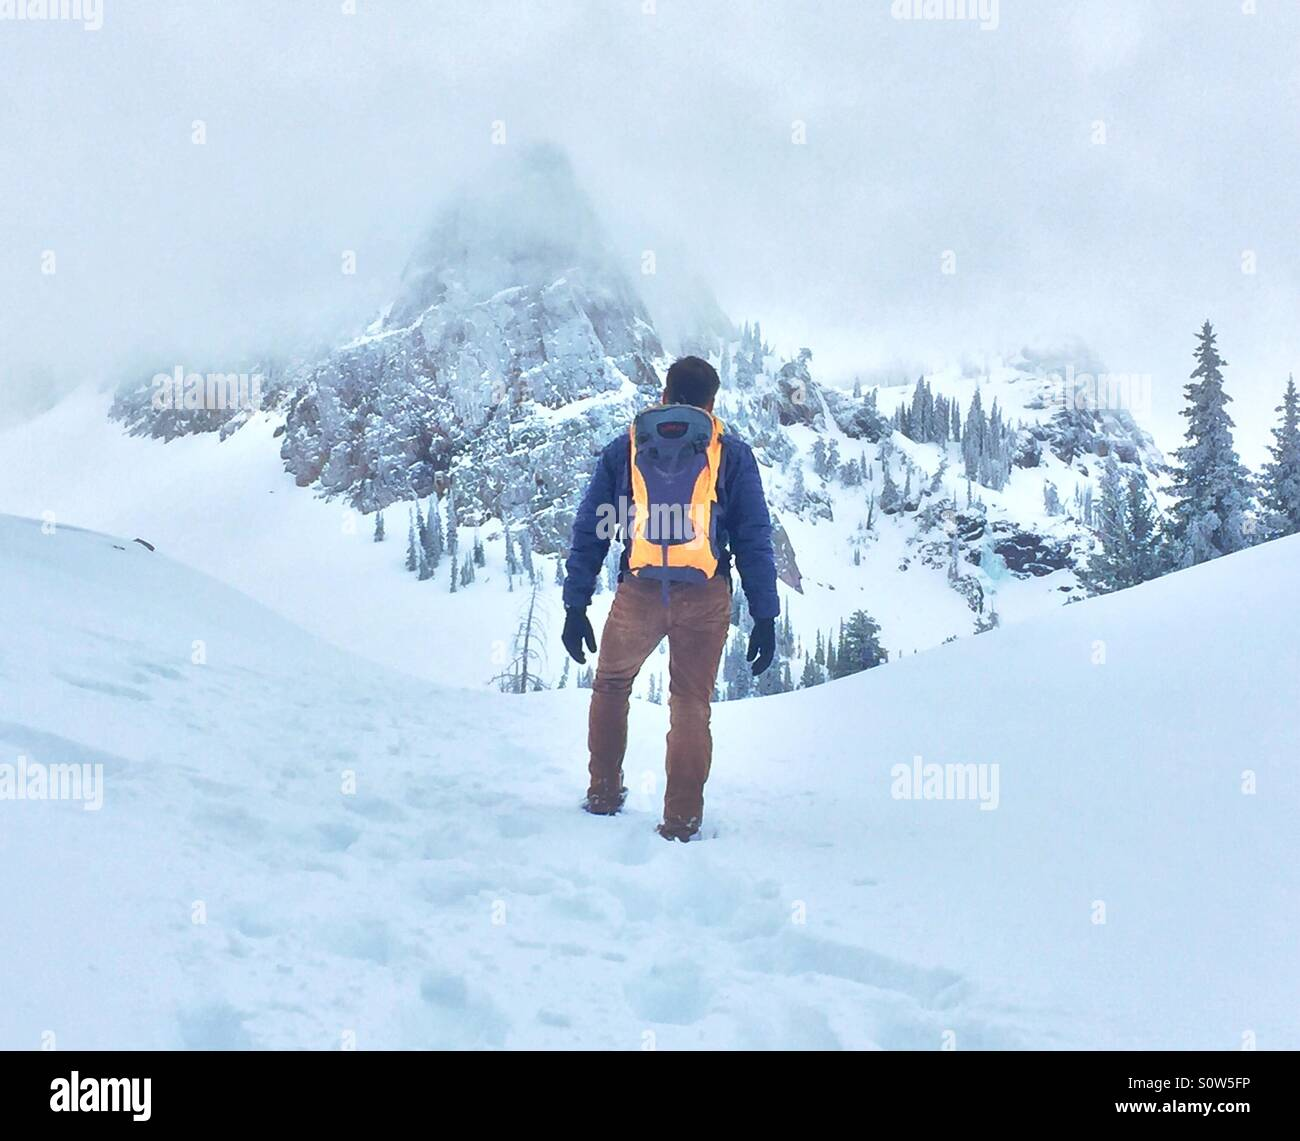 A man hikes up to a mountain peak in snow-covered Utah. - Stock Image